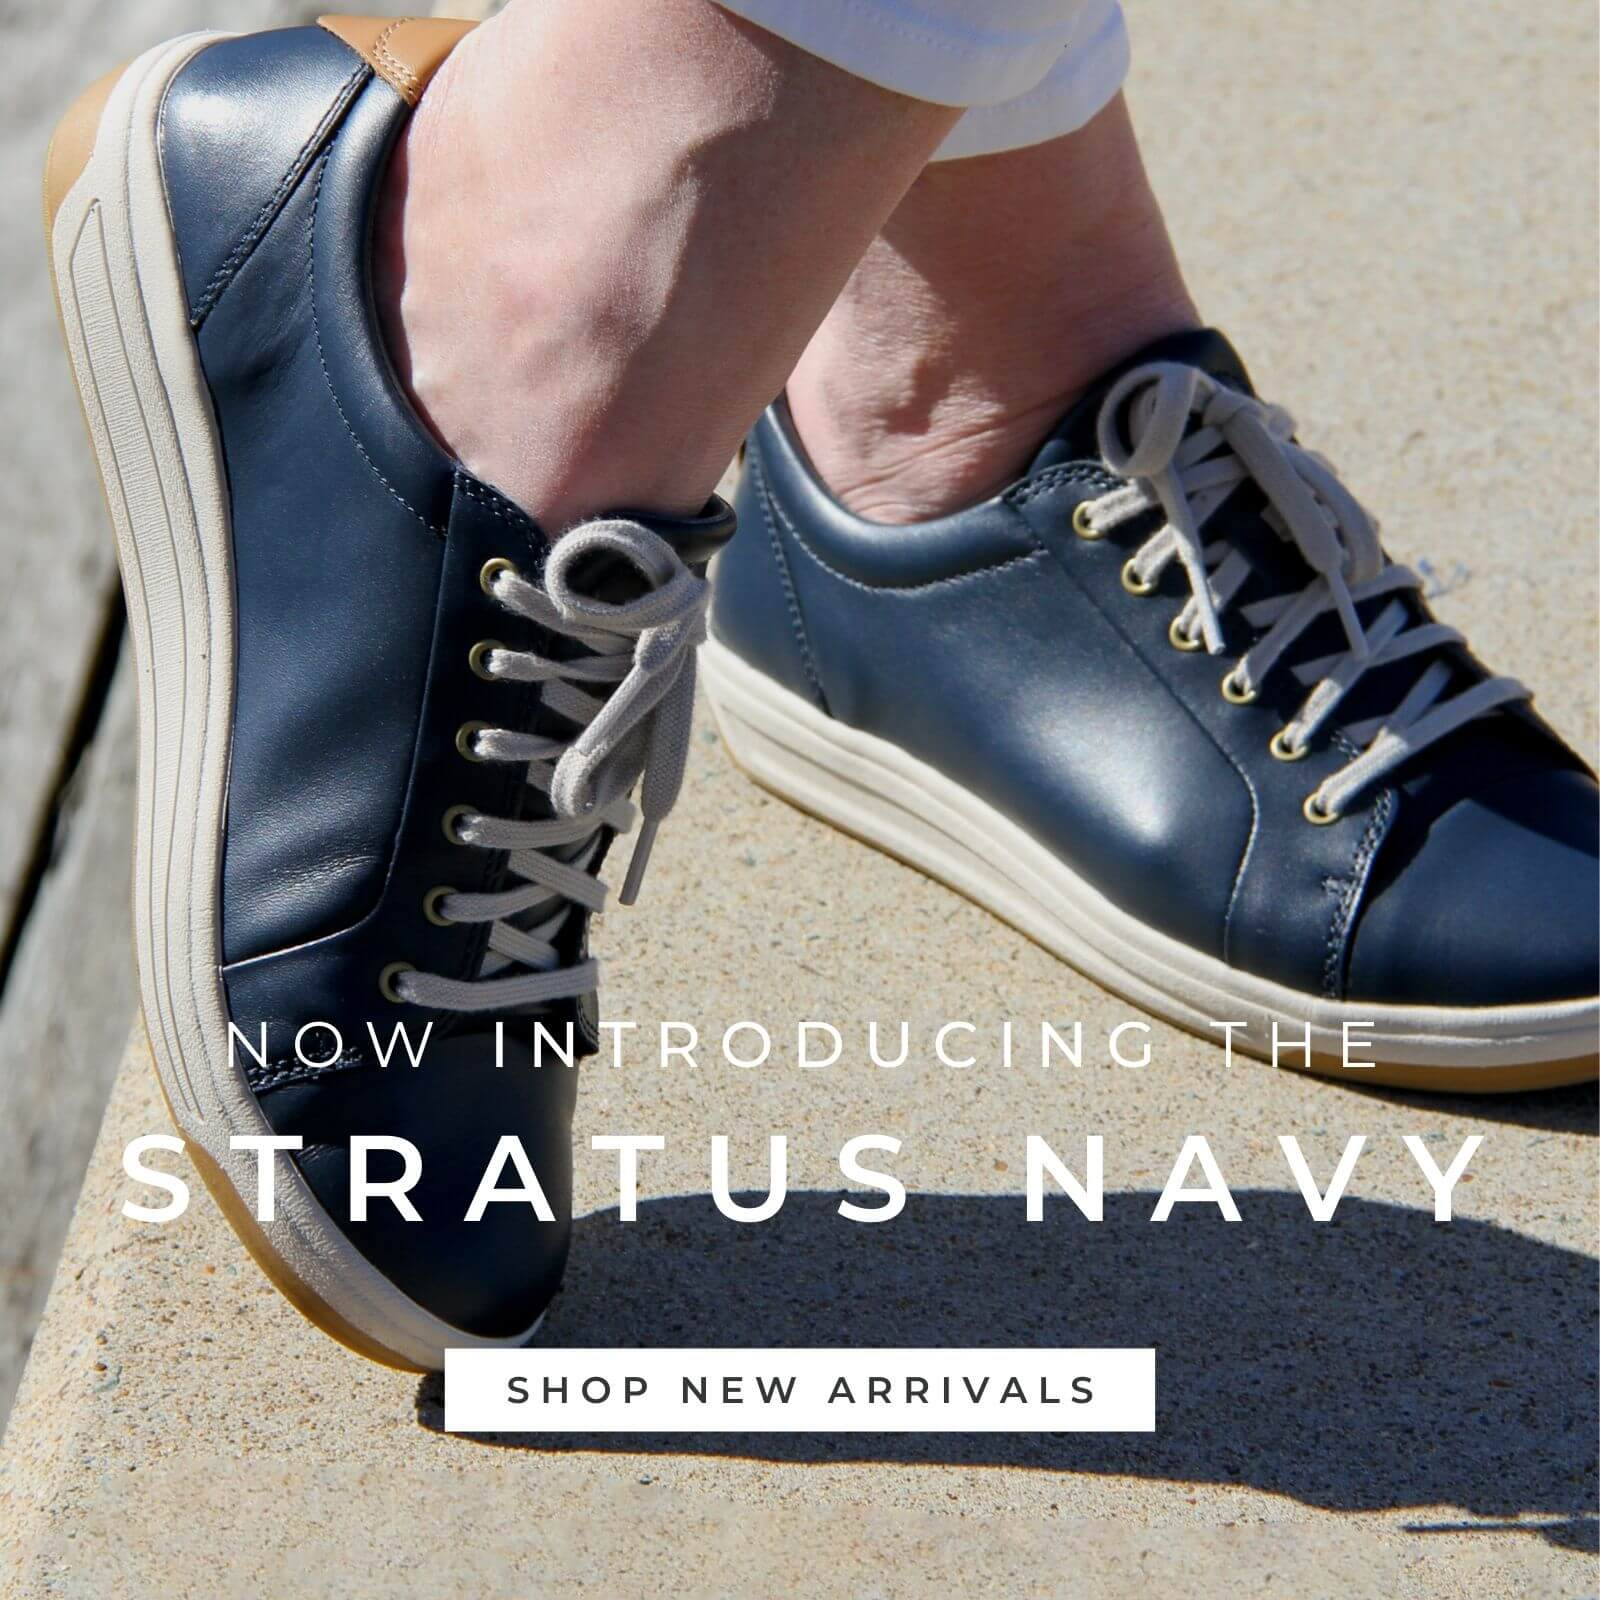 Stratus_Navy_Mobile_Banner_Updated.jpg